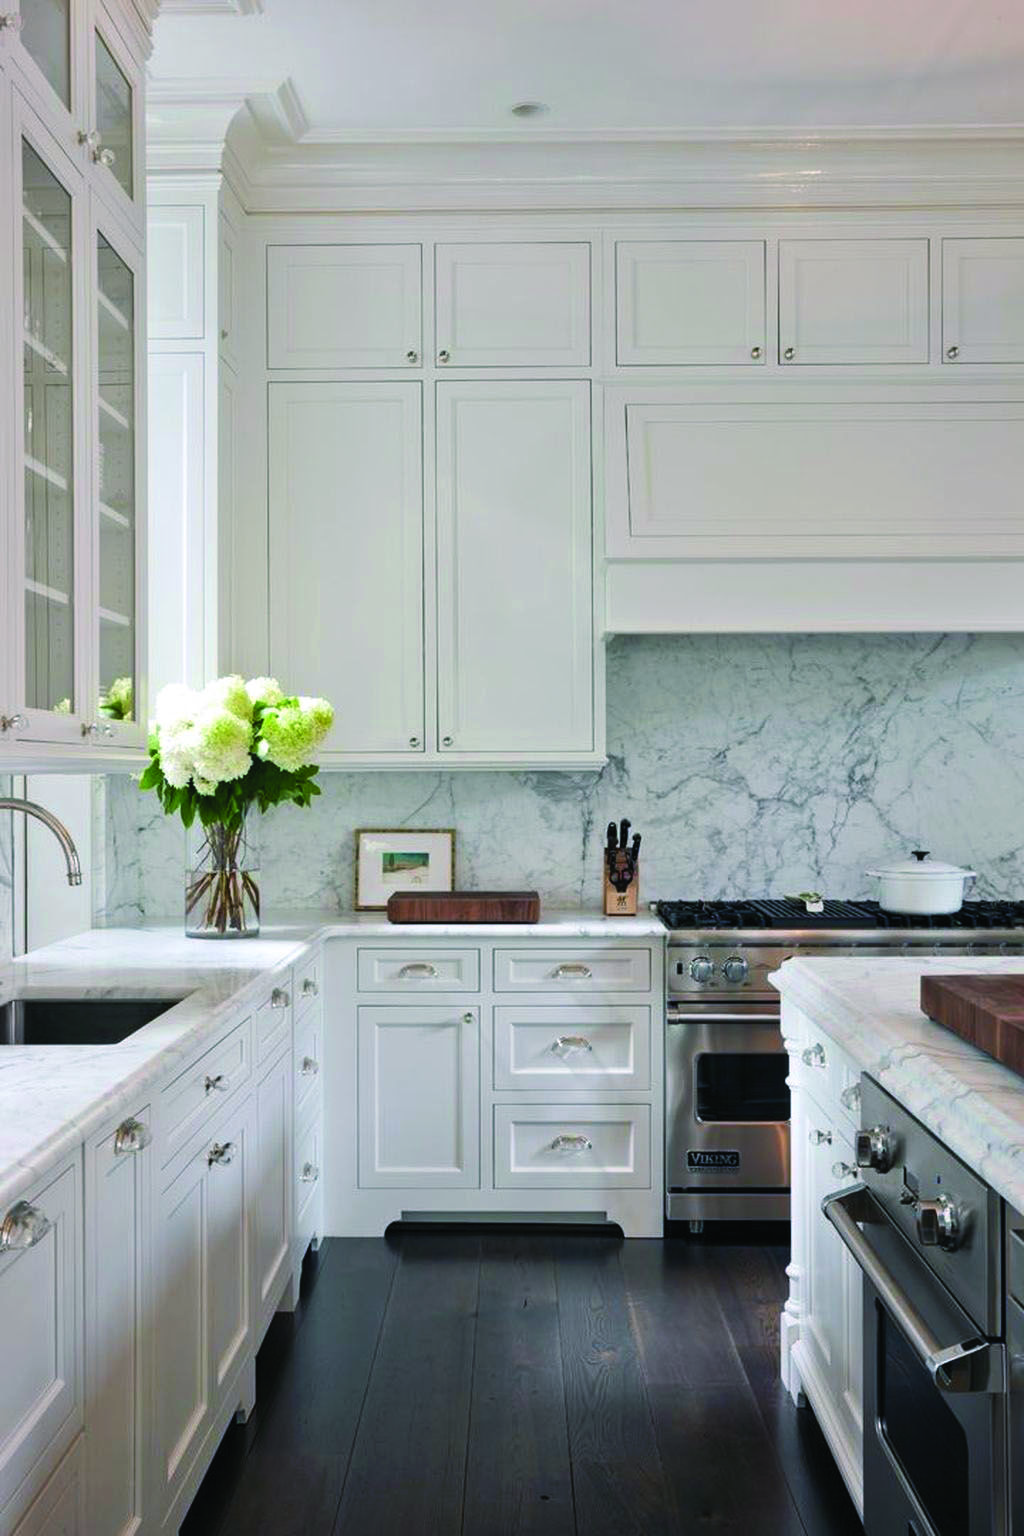 white kitchen ideas magnificent devices that are actually well maintained vivid and also will on kitchen cabinets not white id=96452